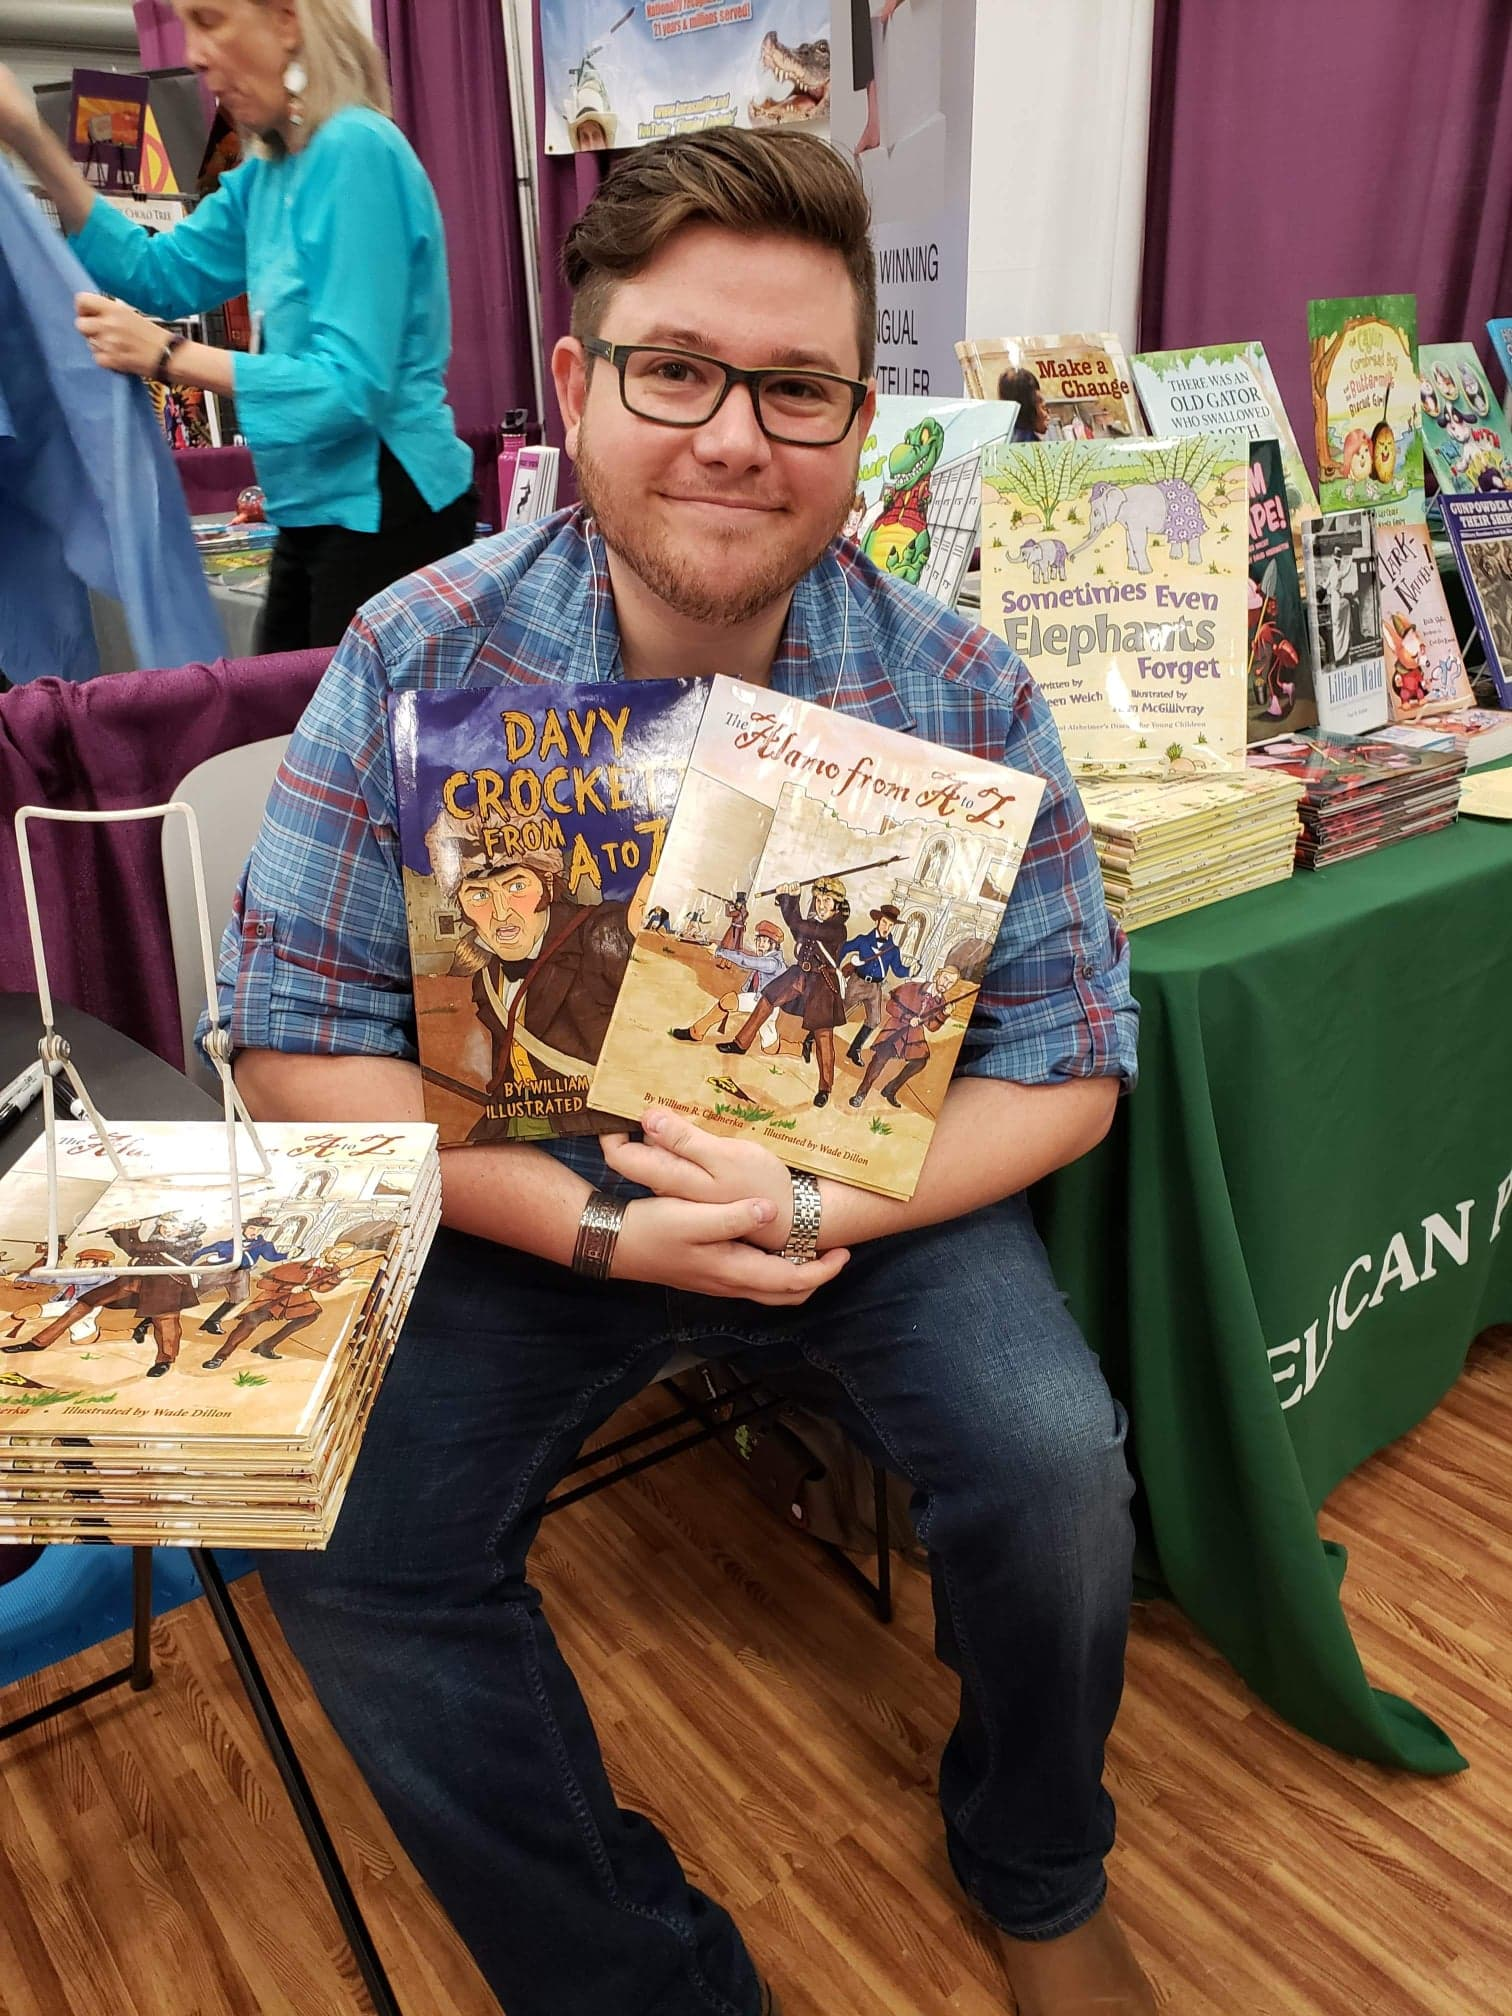 Signing books at the TXLA